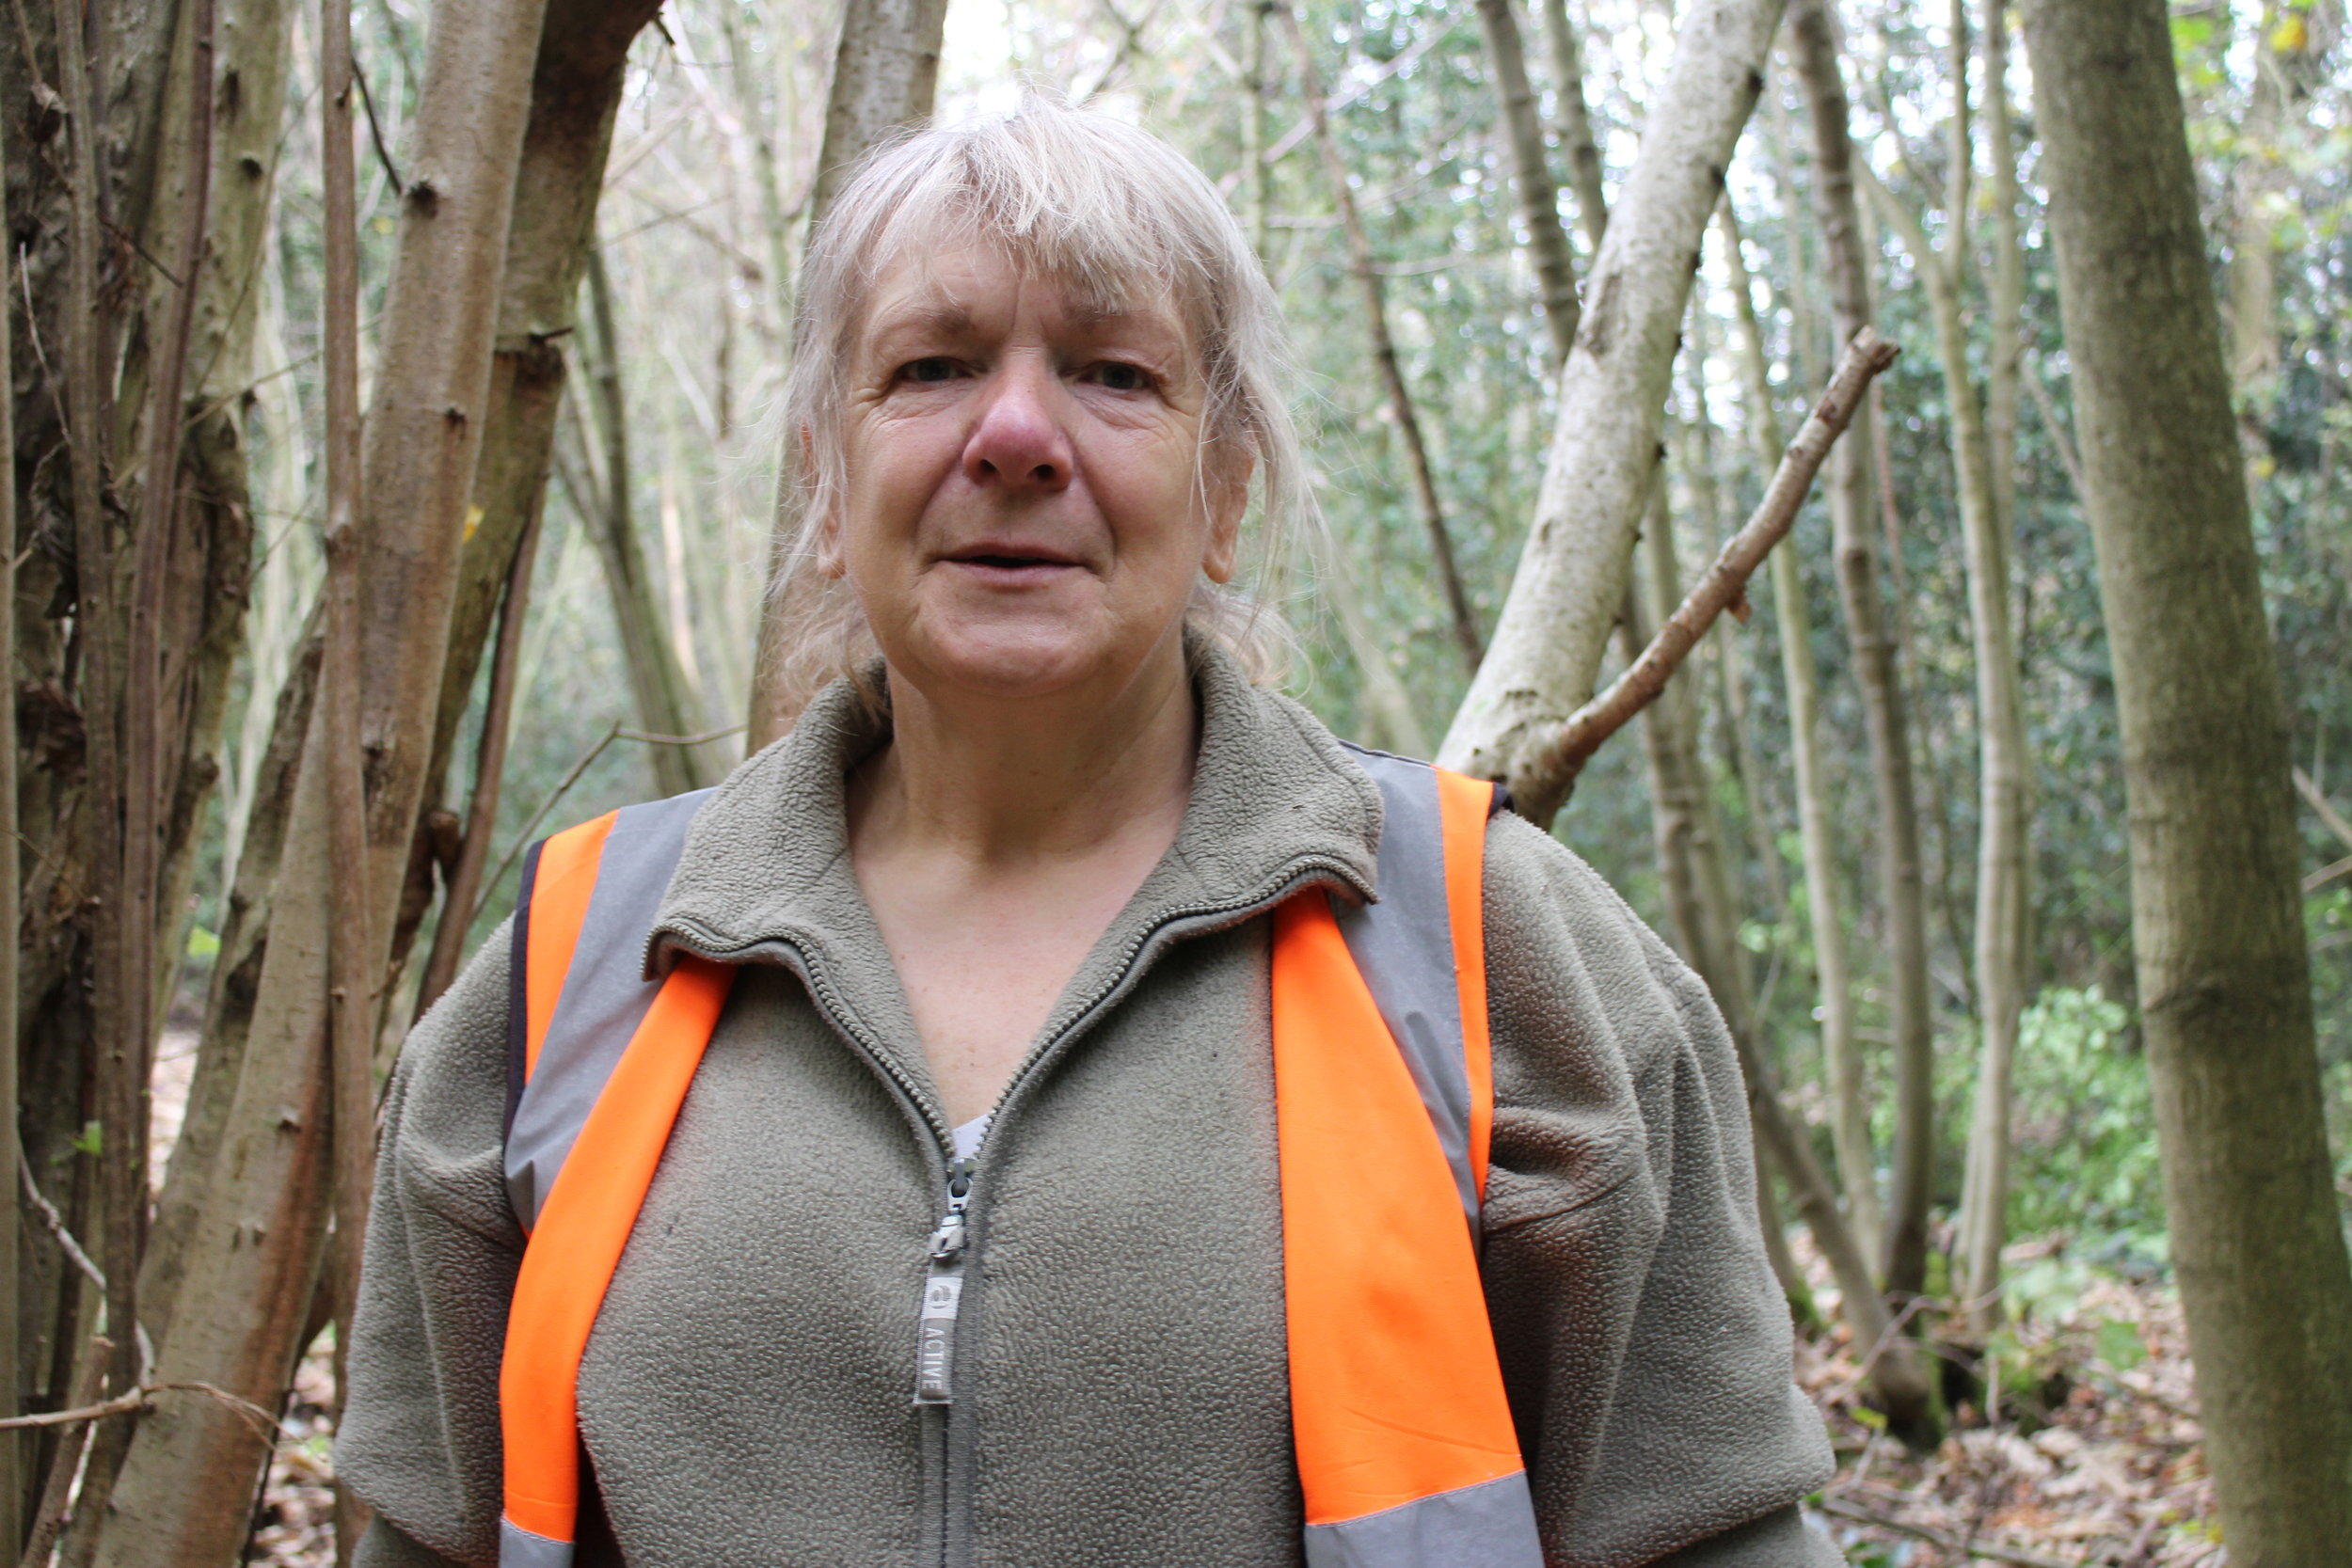 ELAINE BLEWITT,  Treasurer  Elaine manages our workdays. Come along to meet her and help with our work in the park!